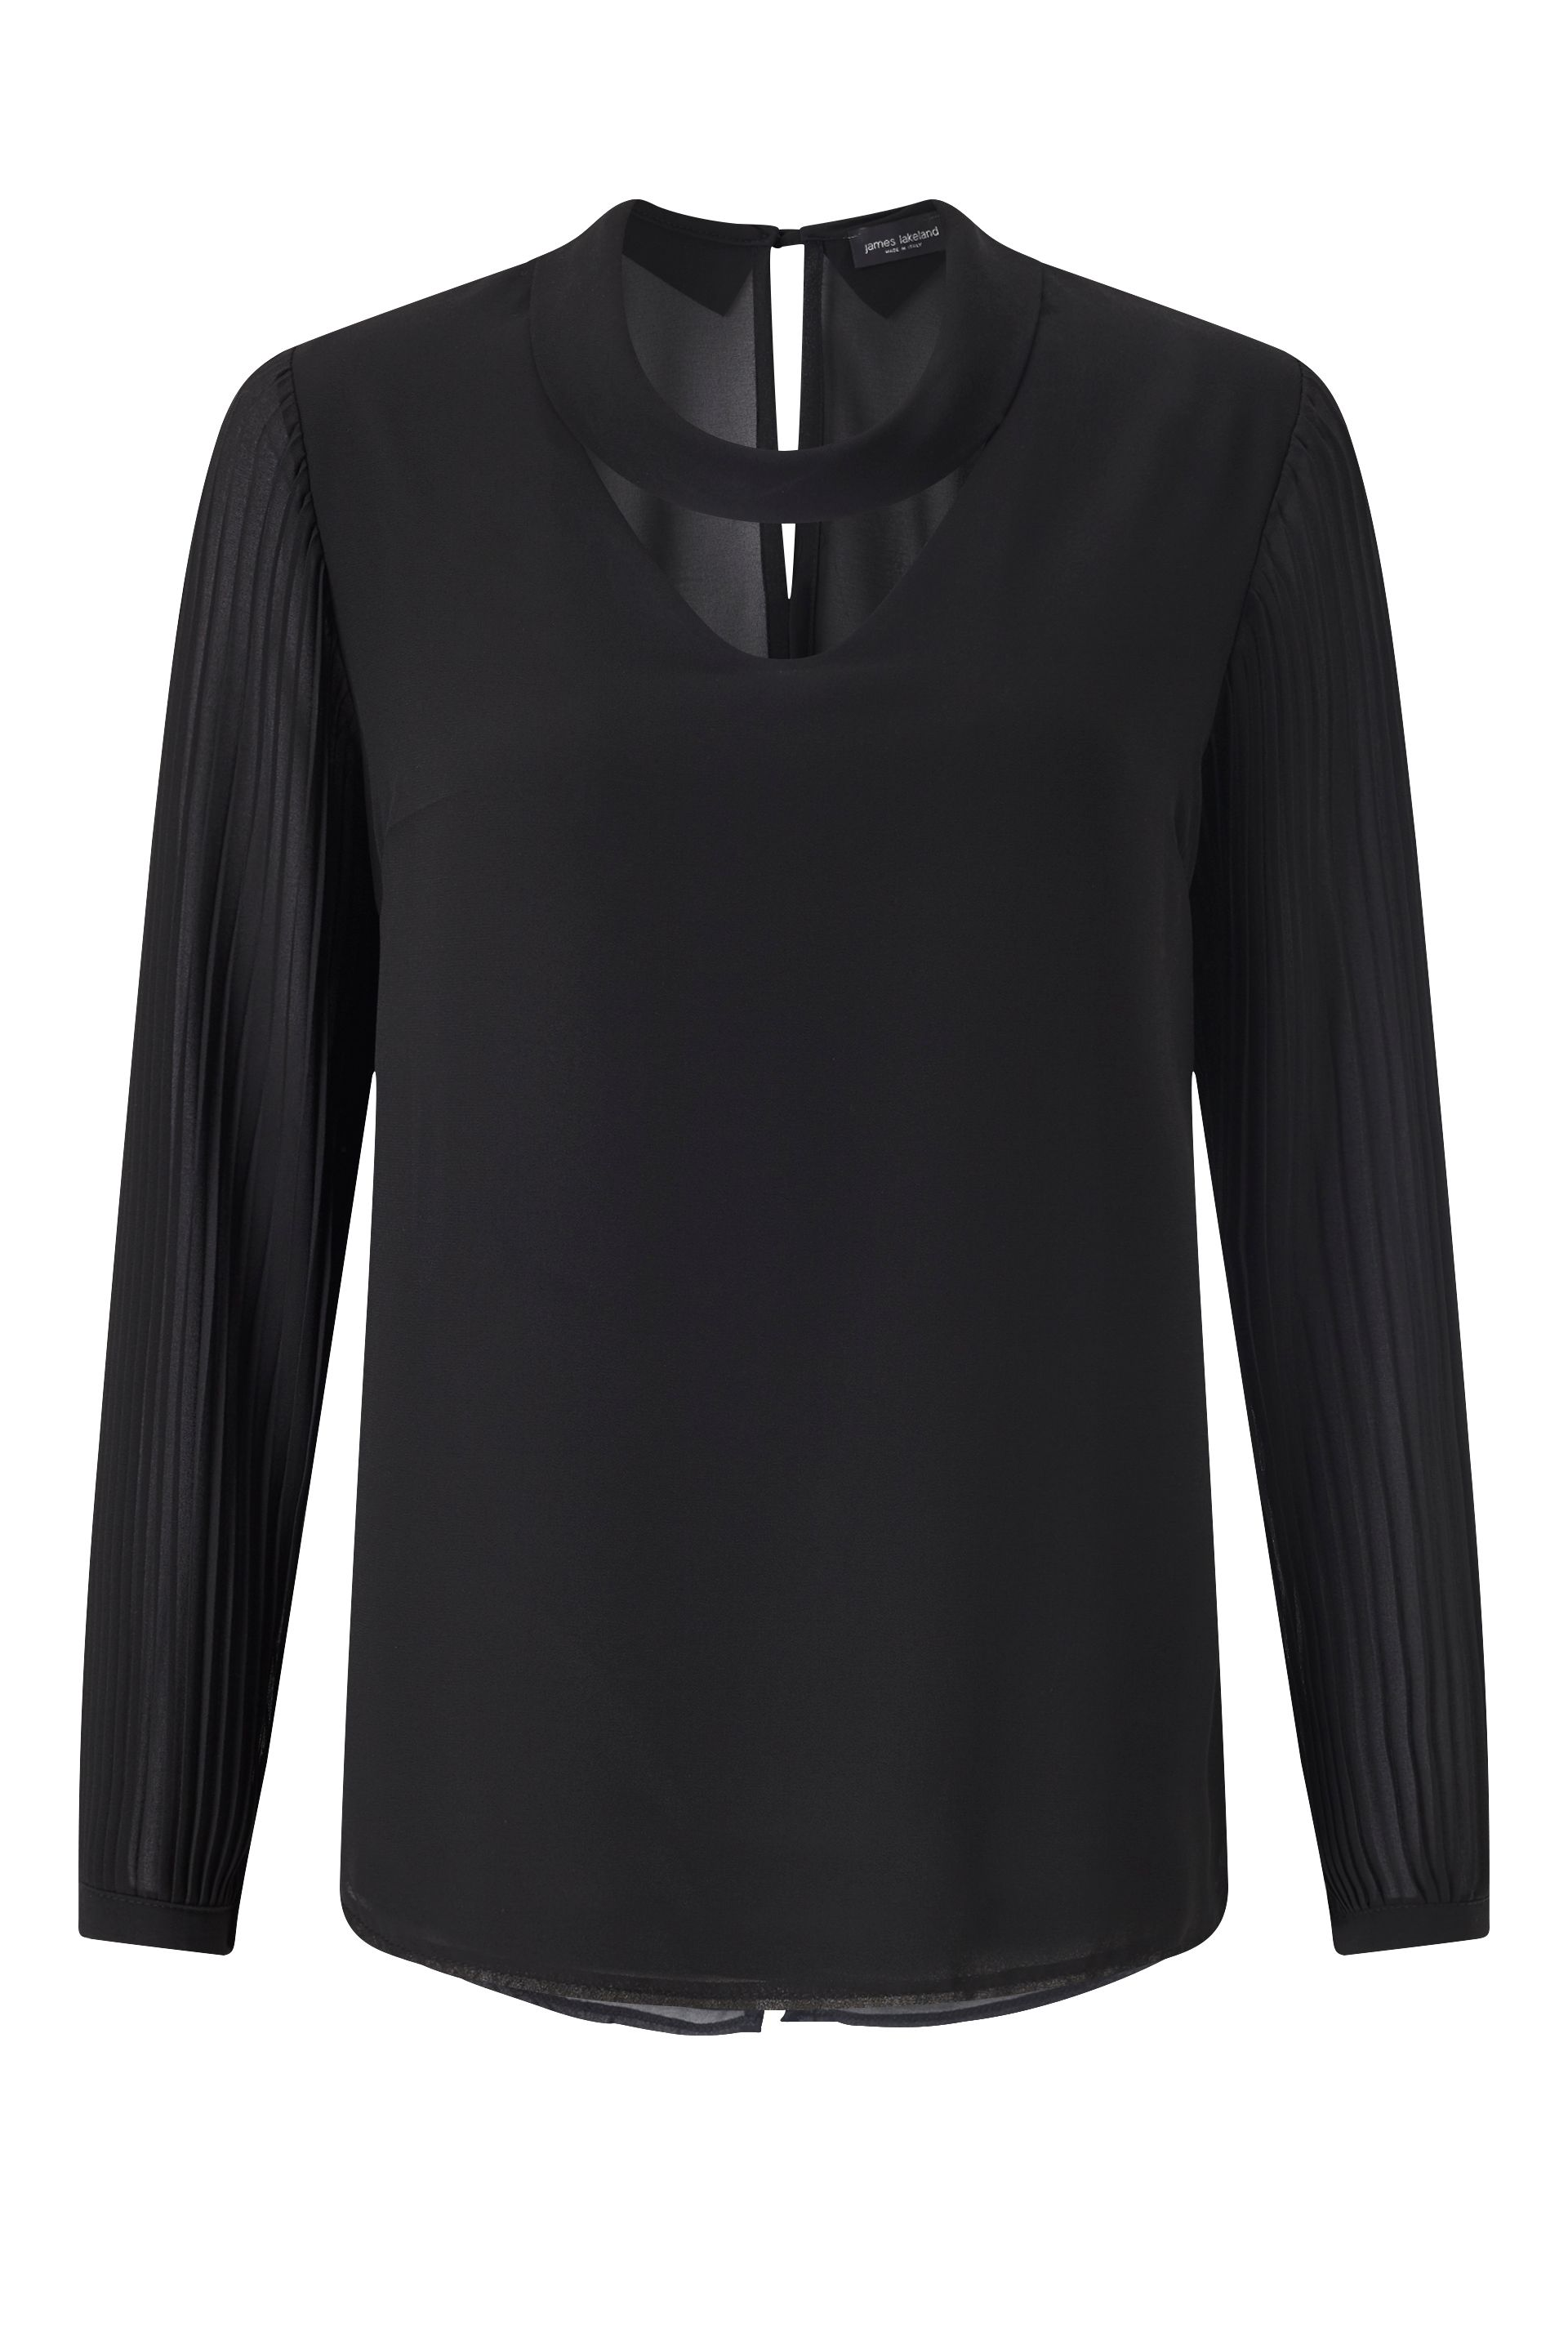 James Lakeland Pleat Sleeve Blouse, Black